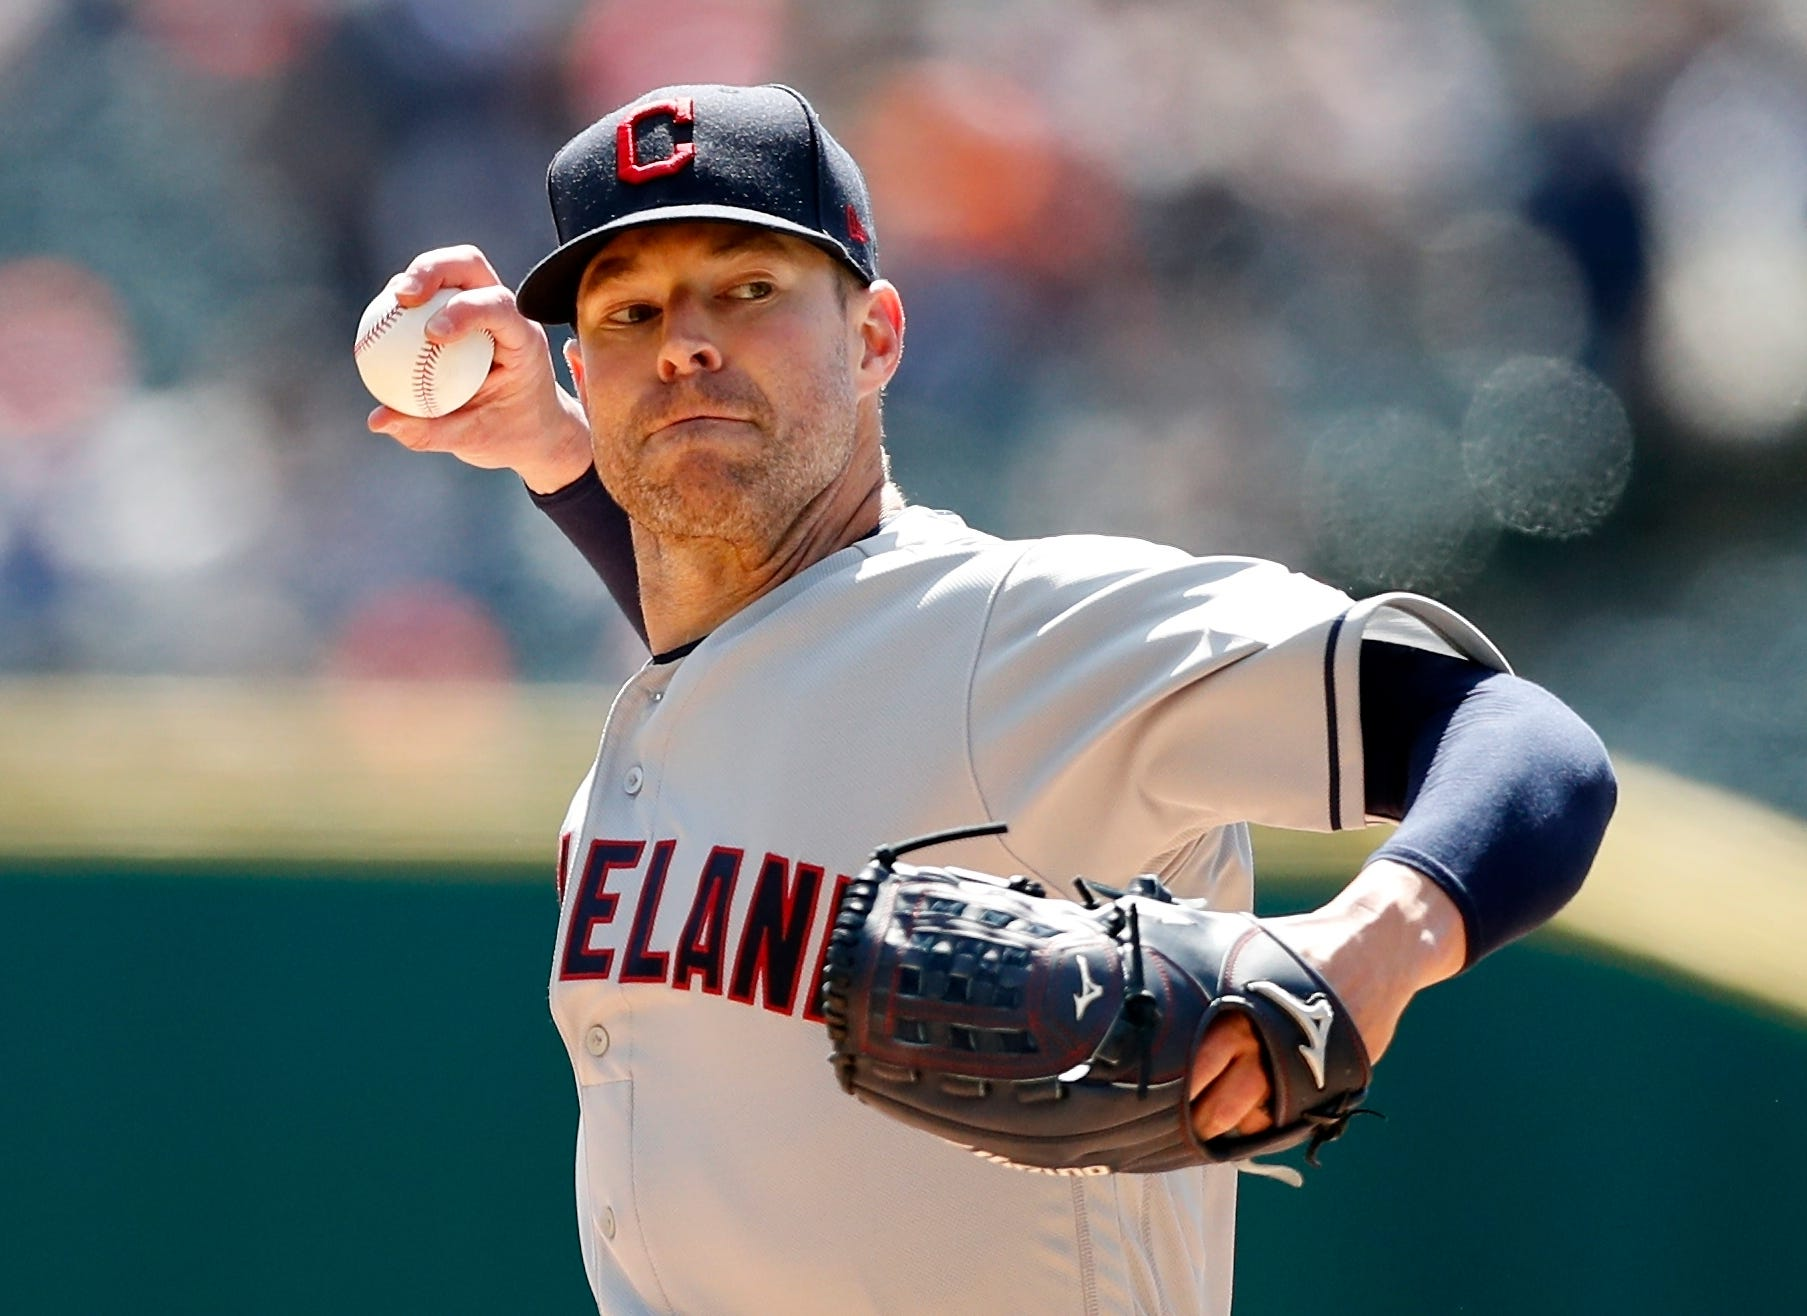 Indians pitcher Corey Kluber throws during the first inning on Tuesday, April 9, 2019, at Comerica Park.